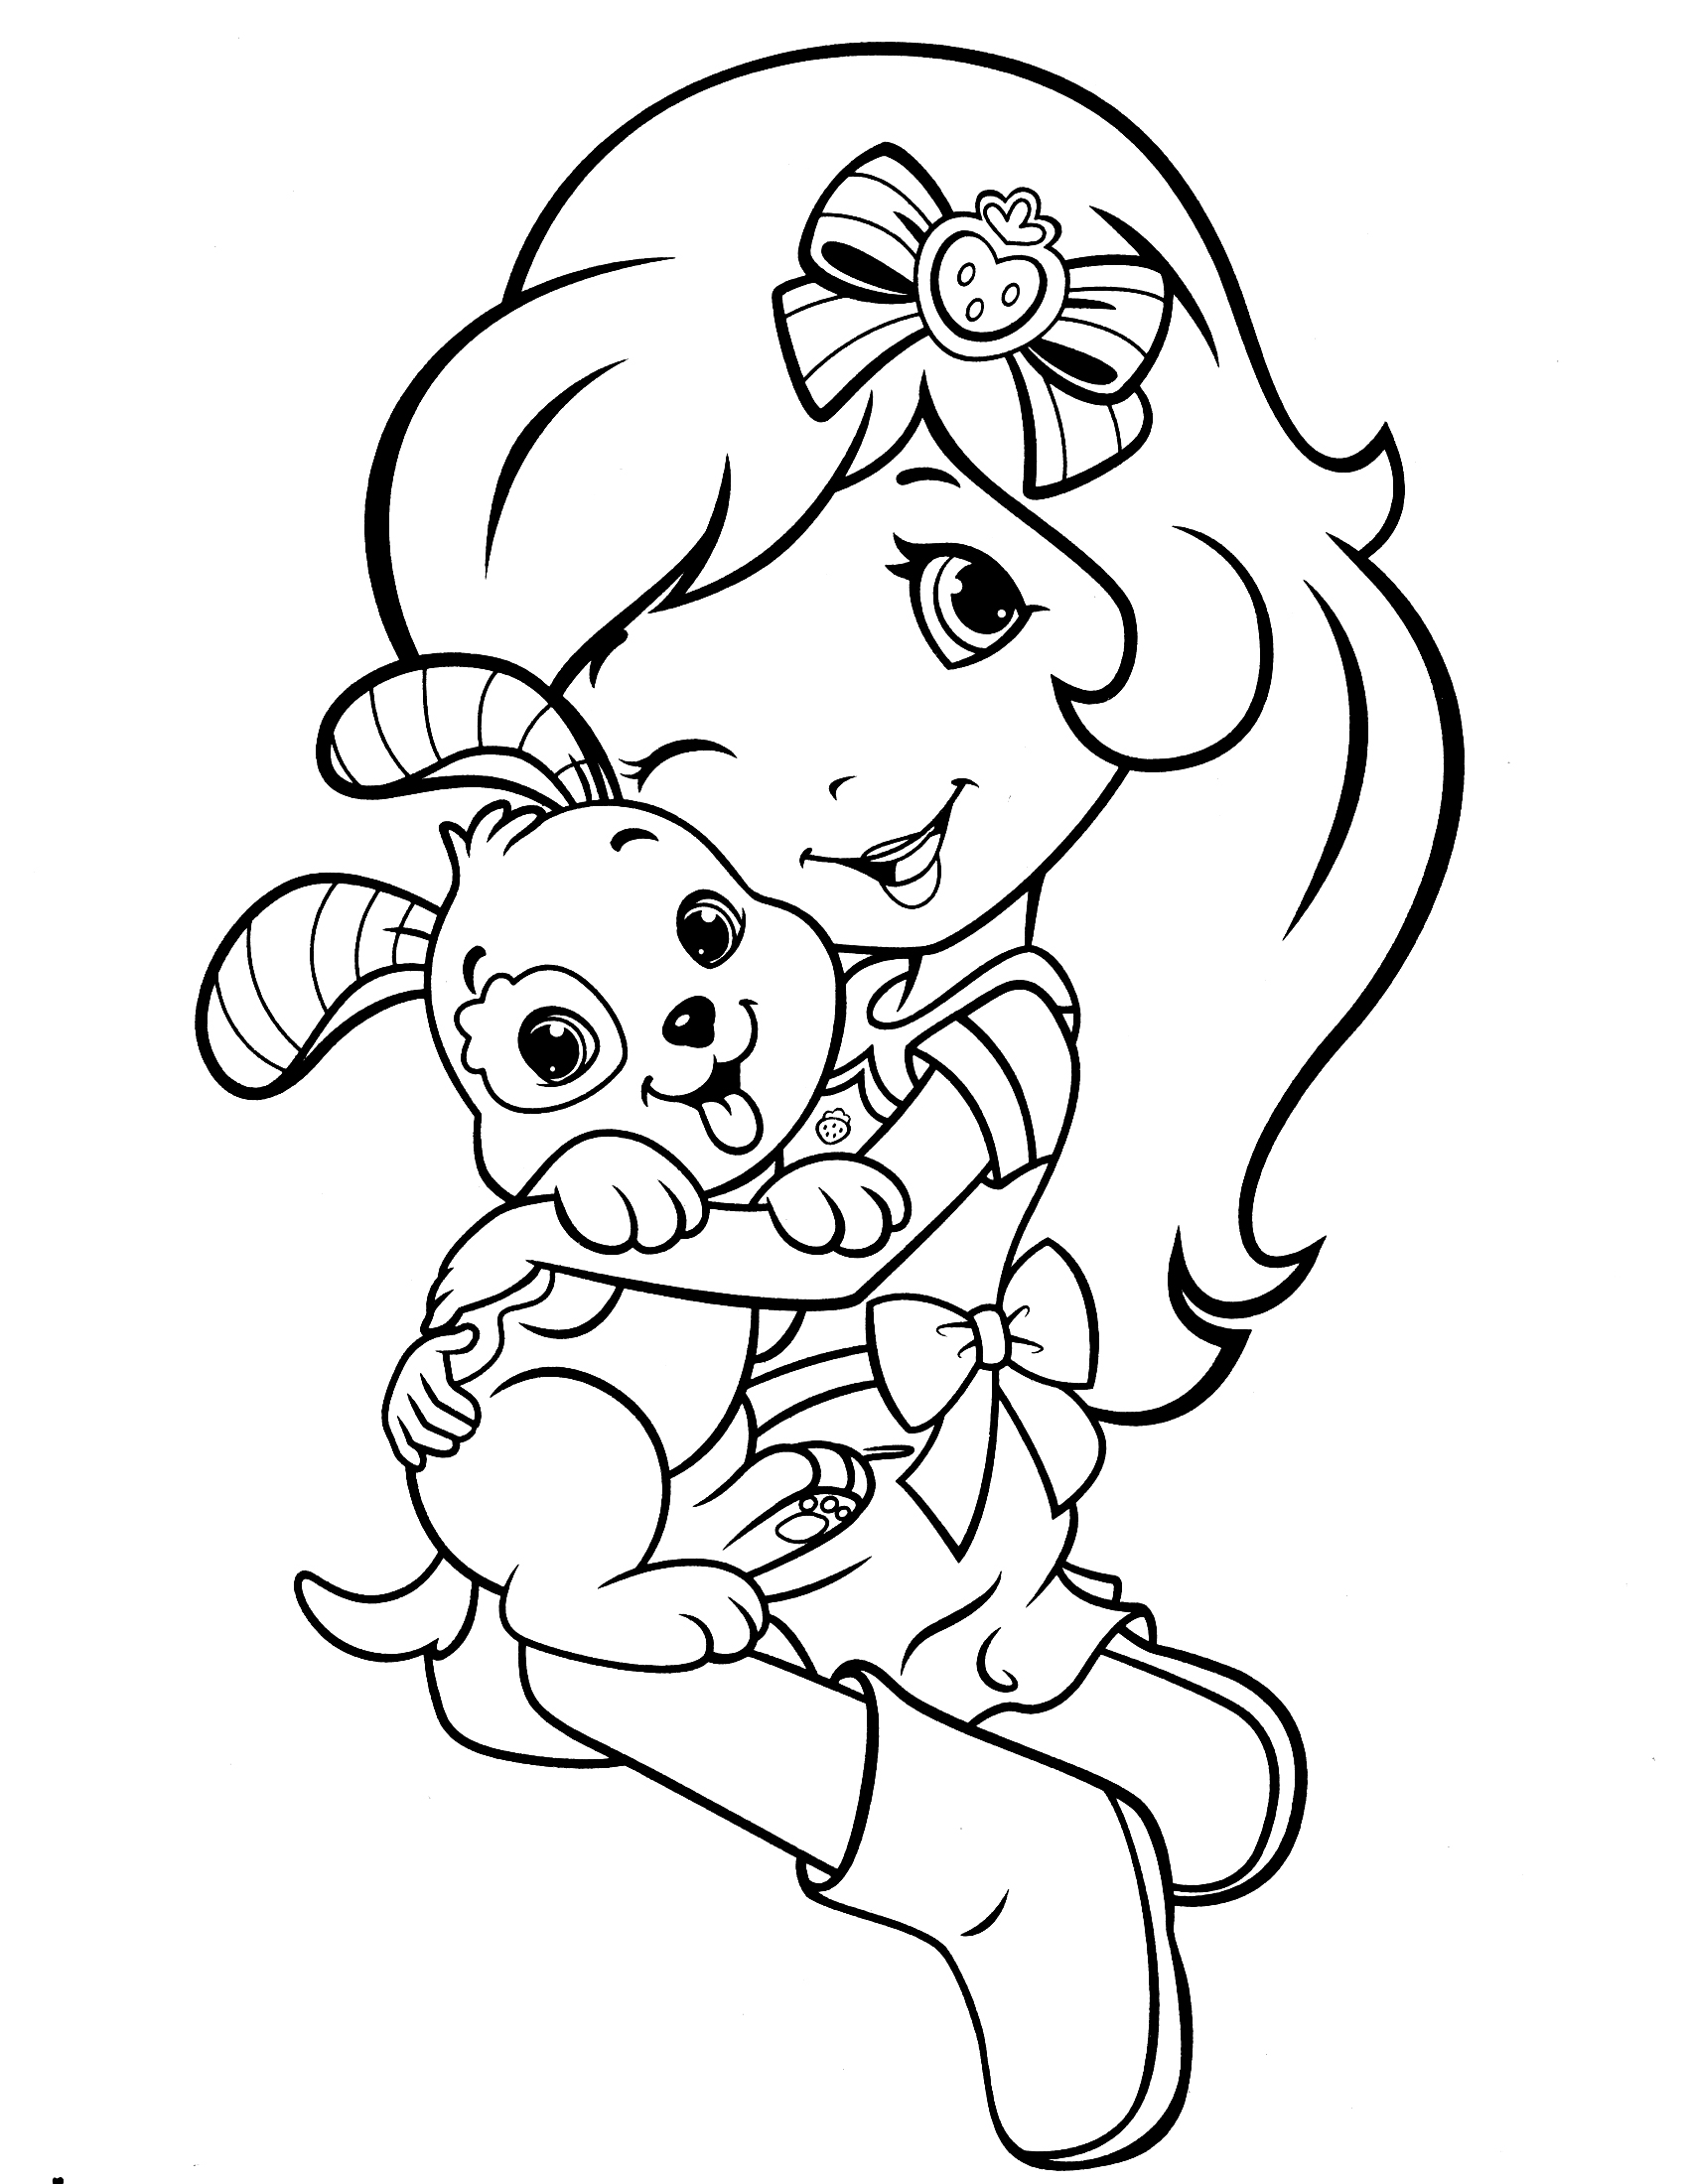 cool coloring pages for teenagers strawberry shortcake coloring pages cool coloring pages pages cool for coloring teenagers